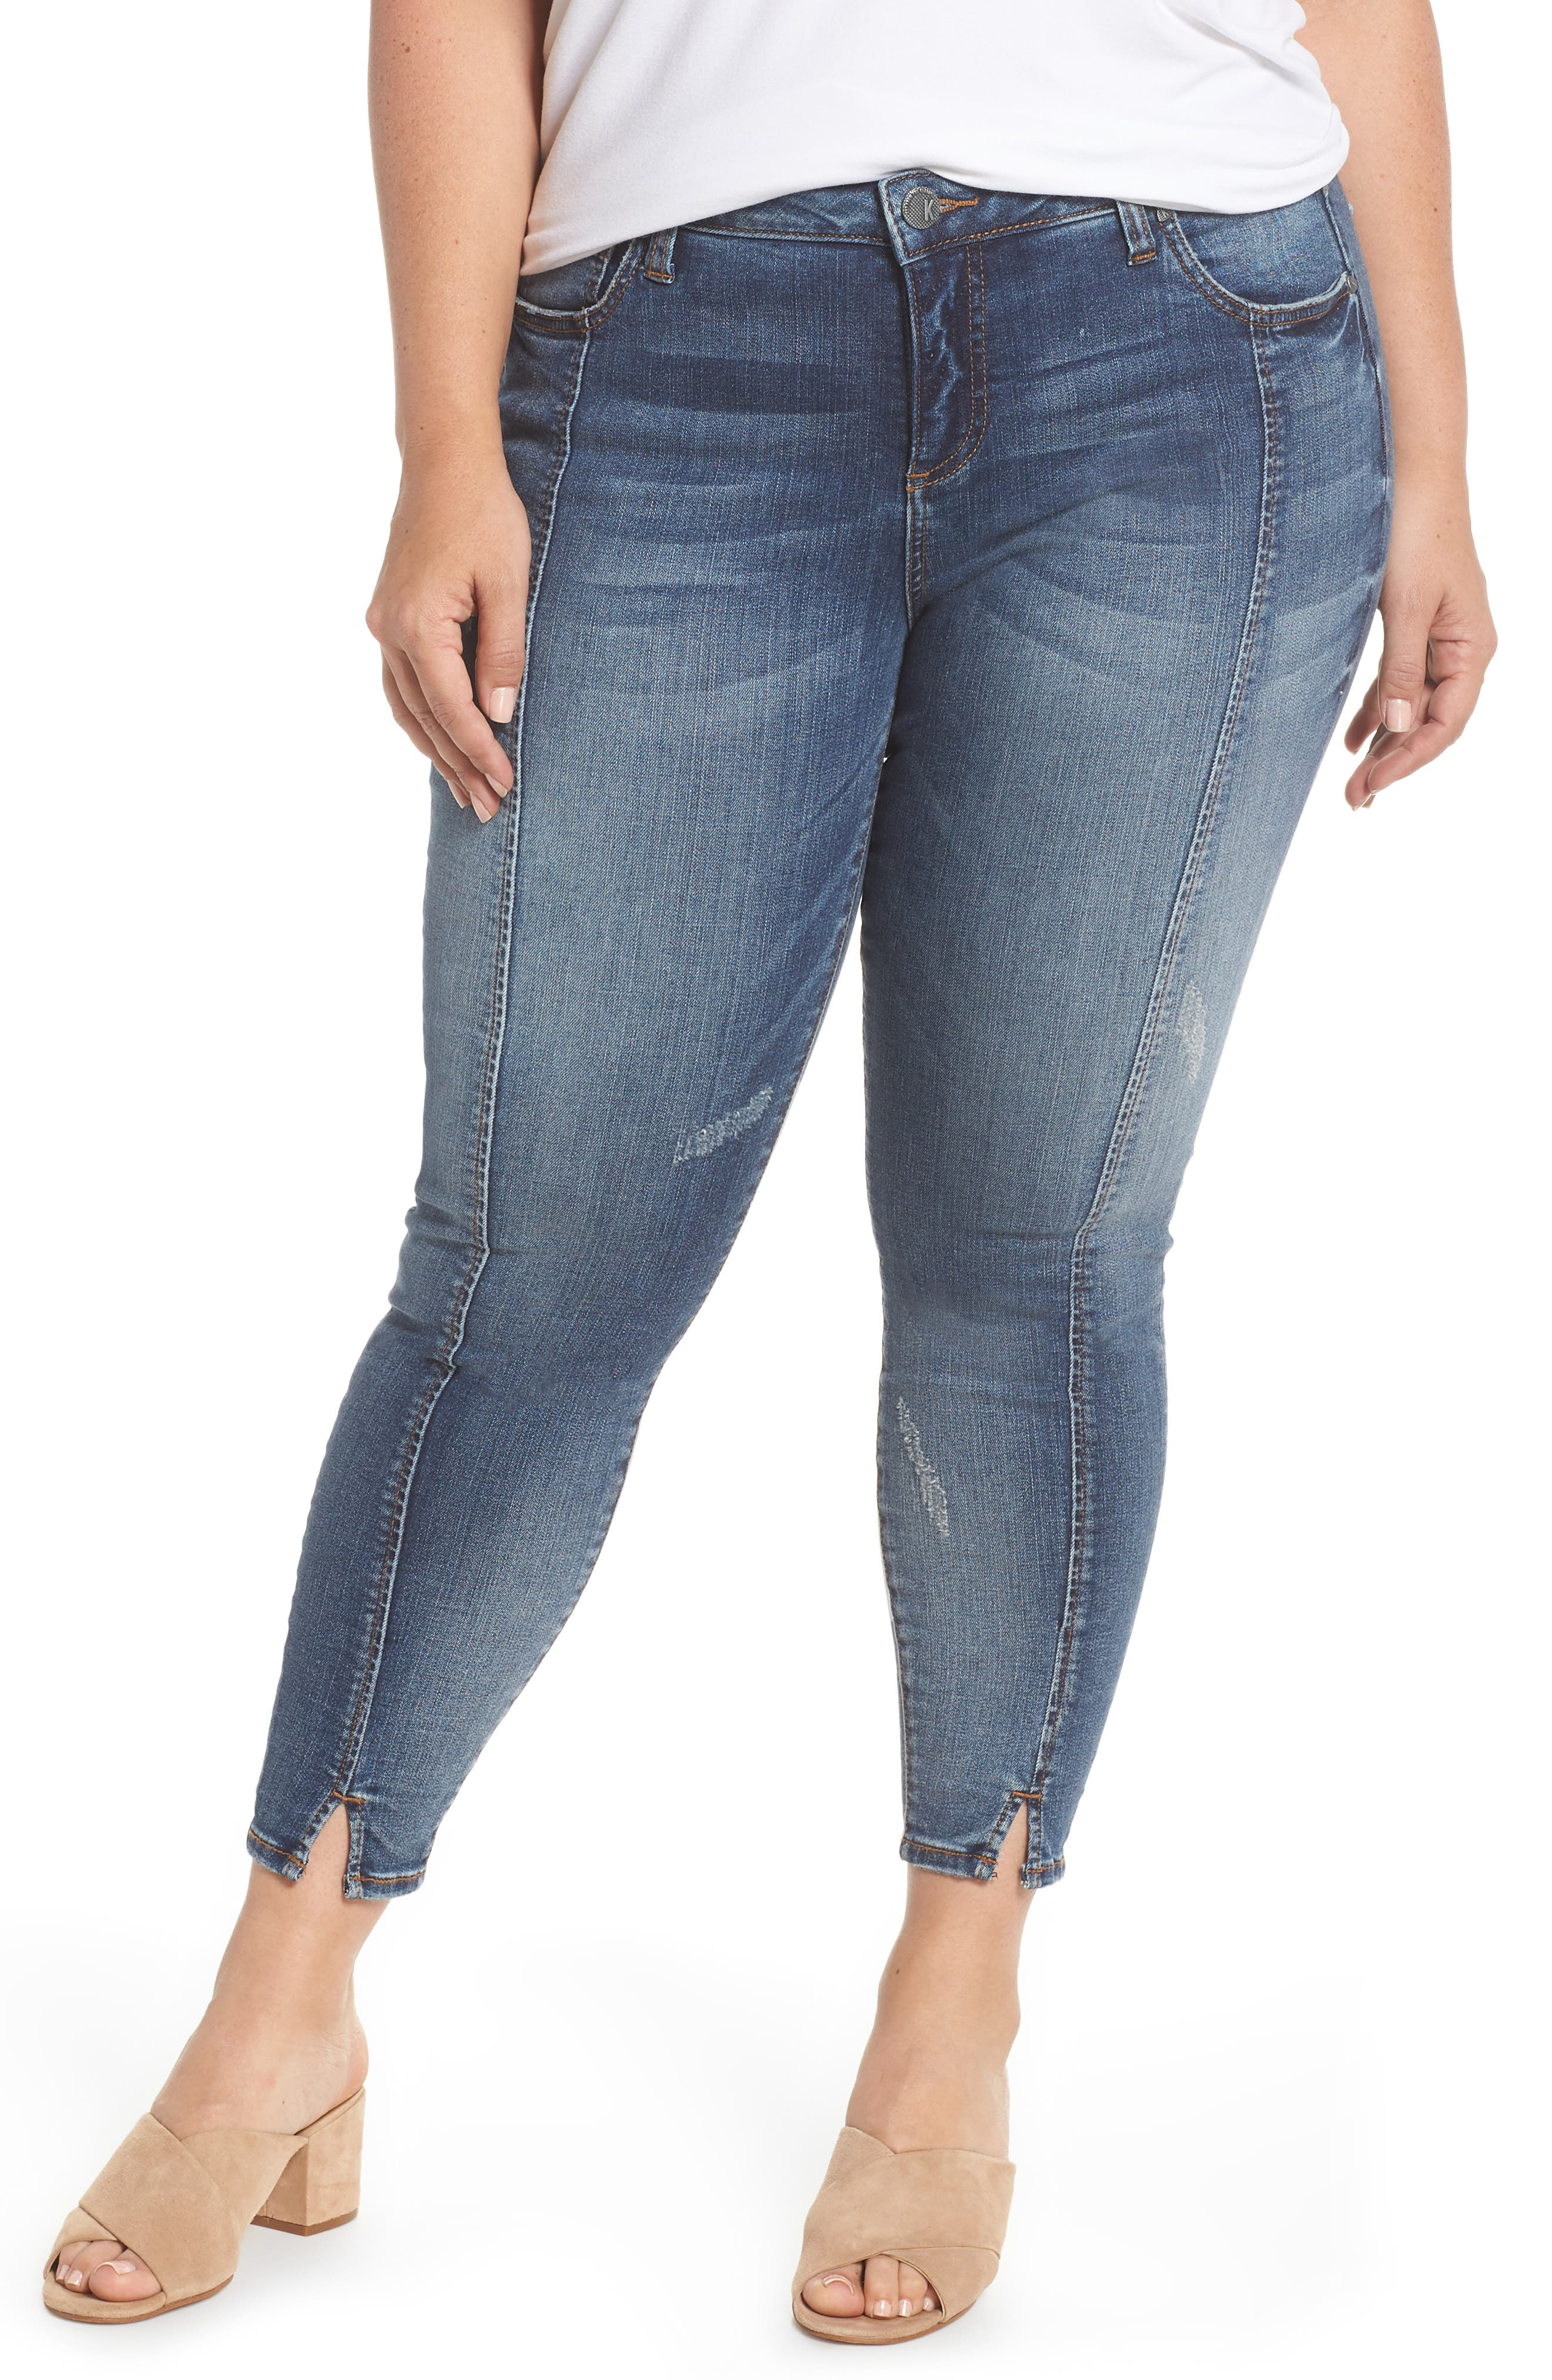 Reese Seam Ankle Skinny Jeans,                             Main thumbnail 1, color,                             Poetic